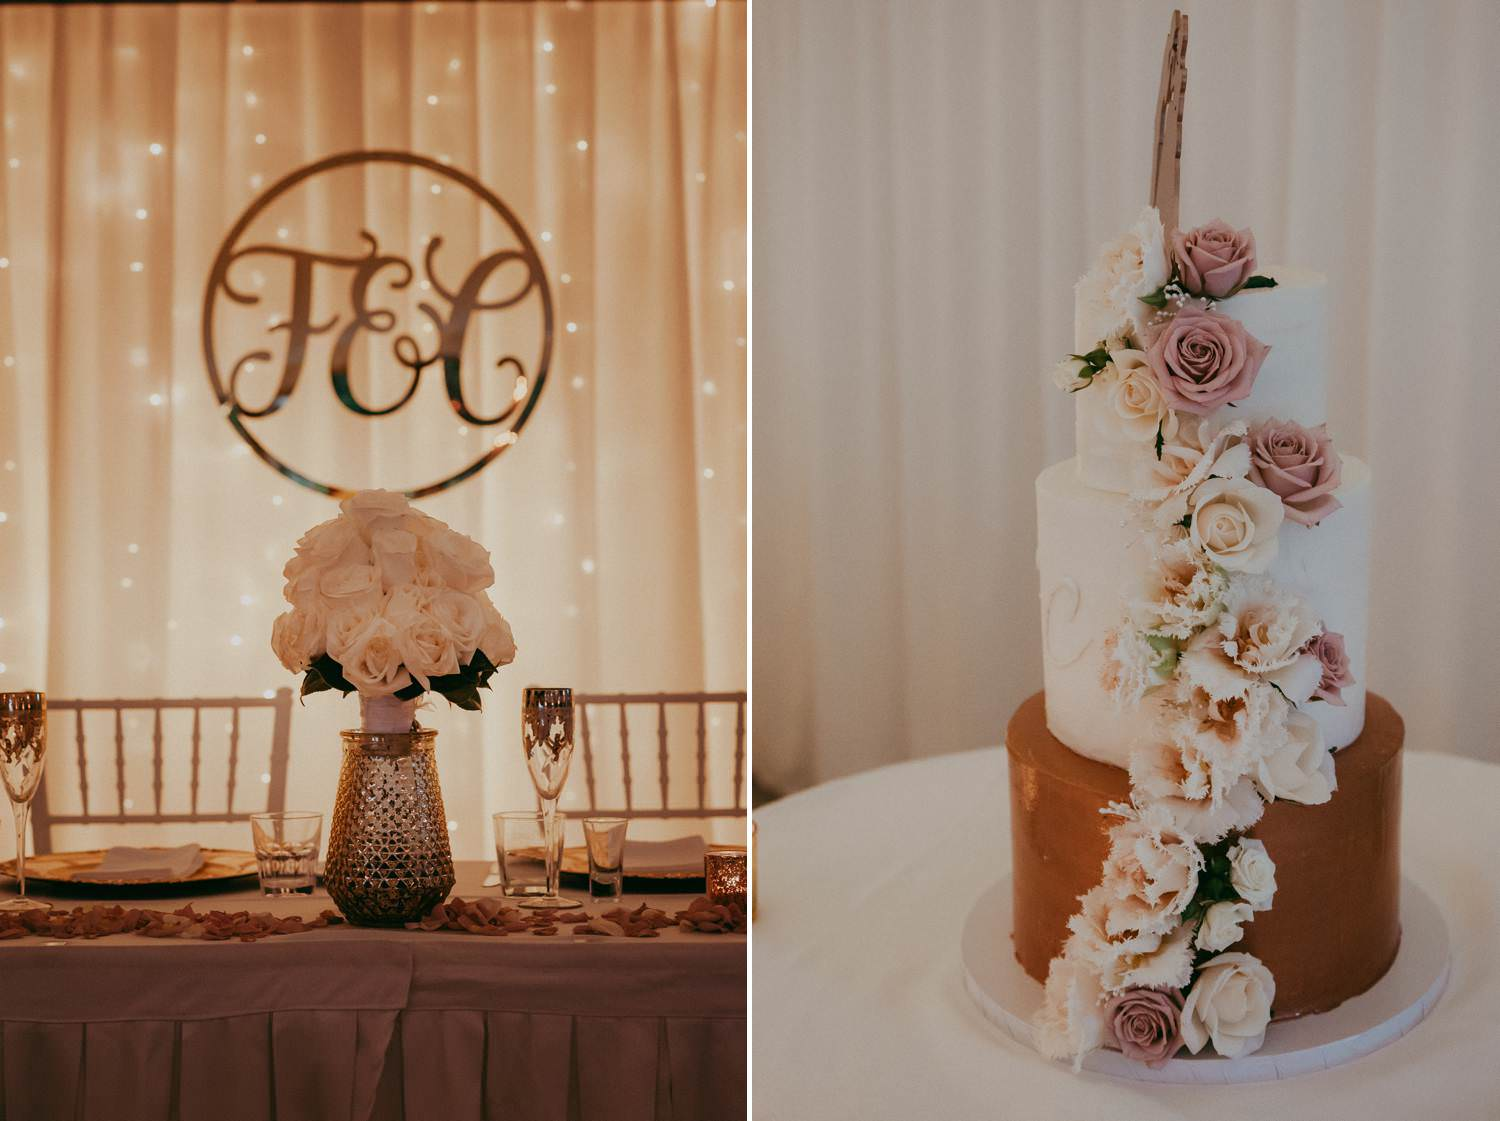 Wedding Reception decorations in gold and pink